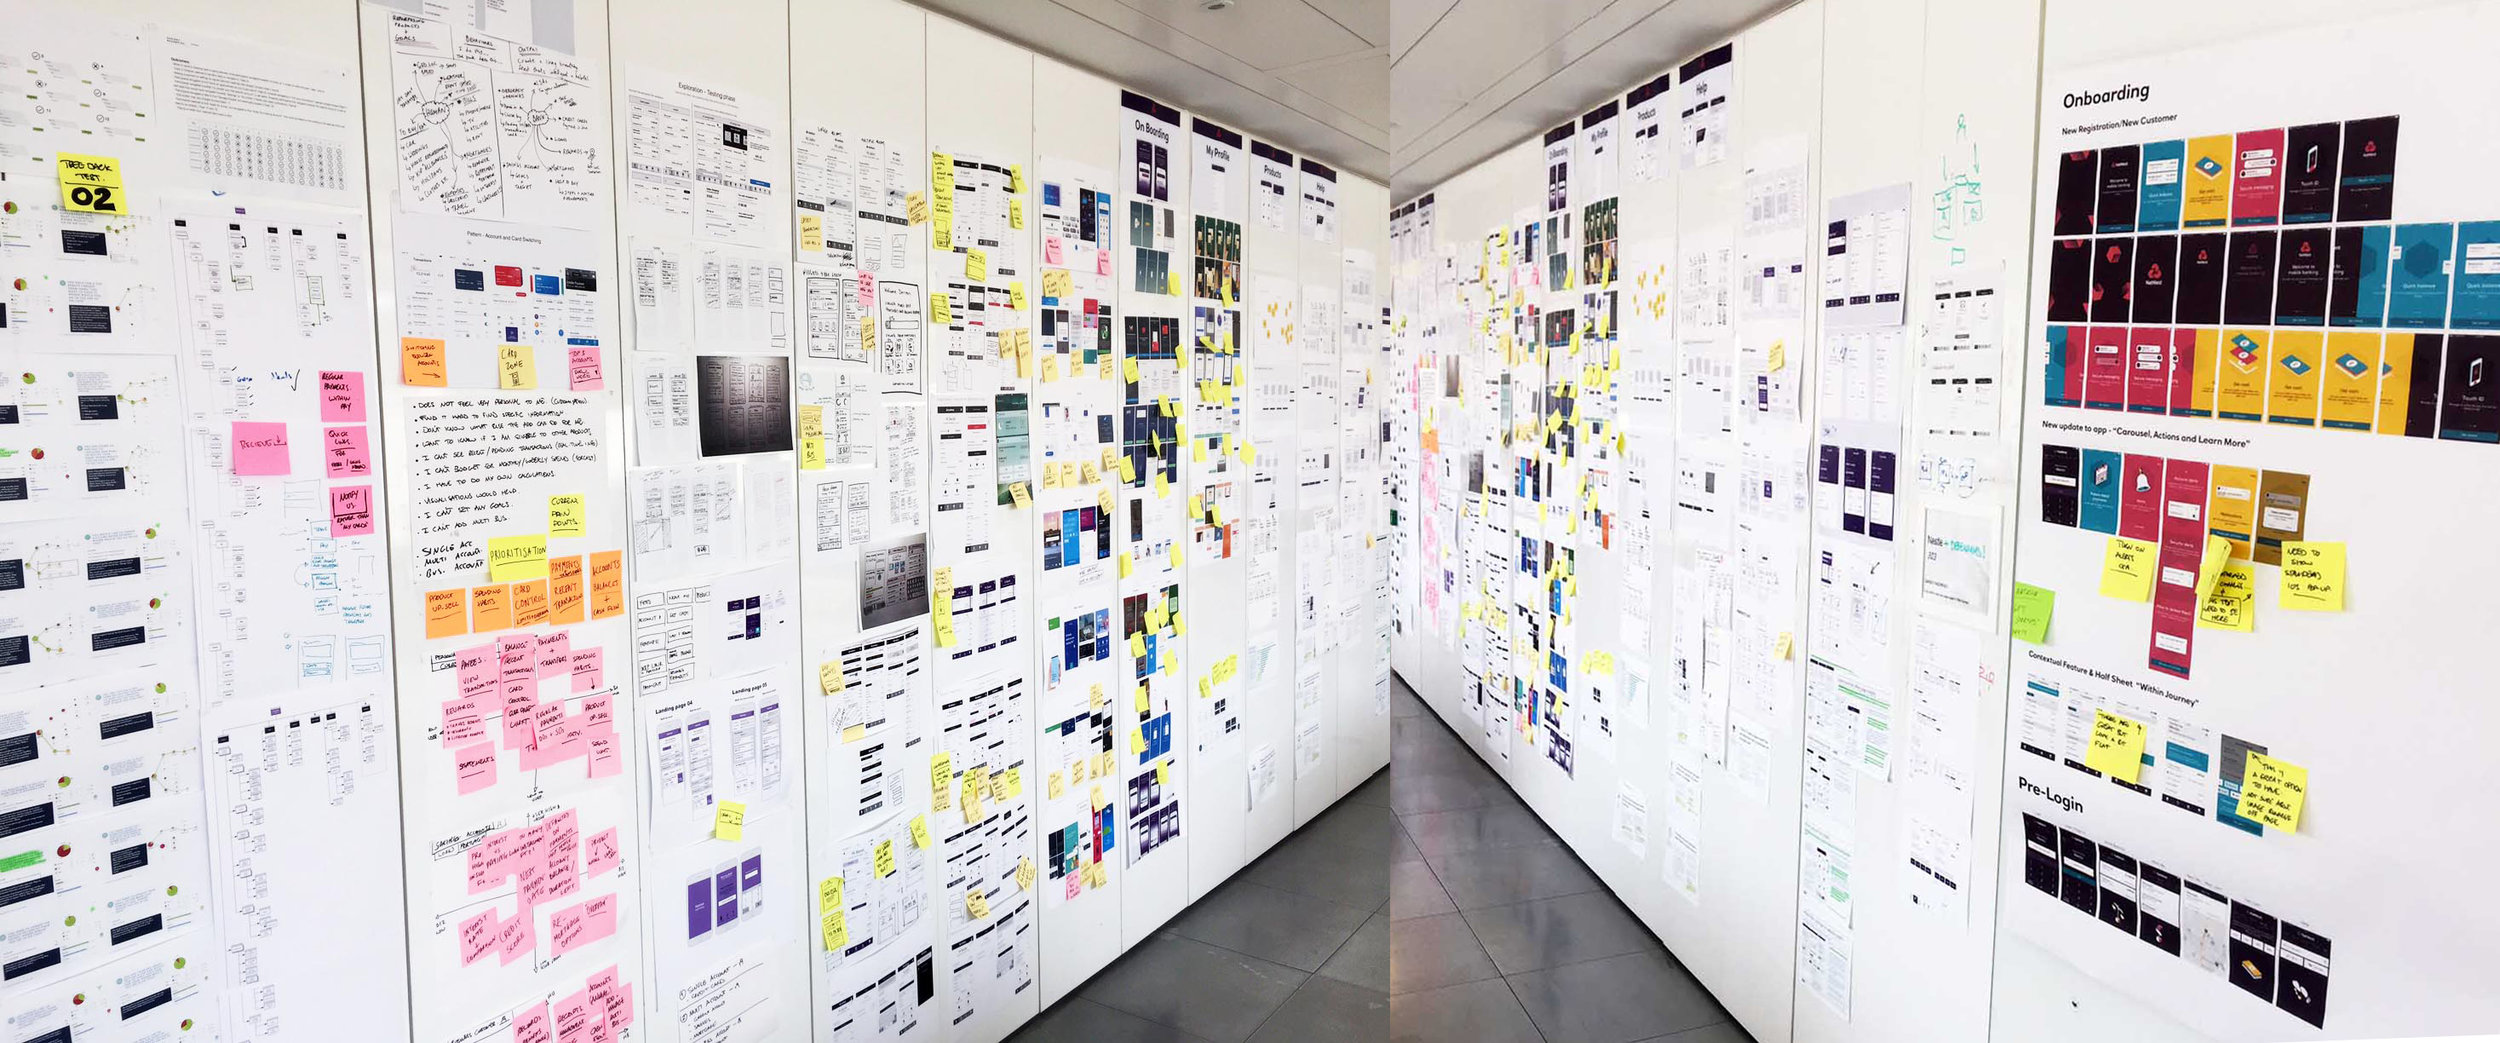 Working wall from discovery to prototyping